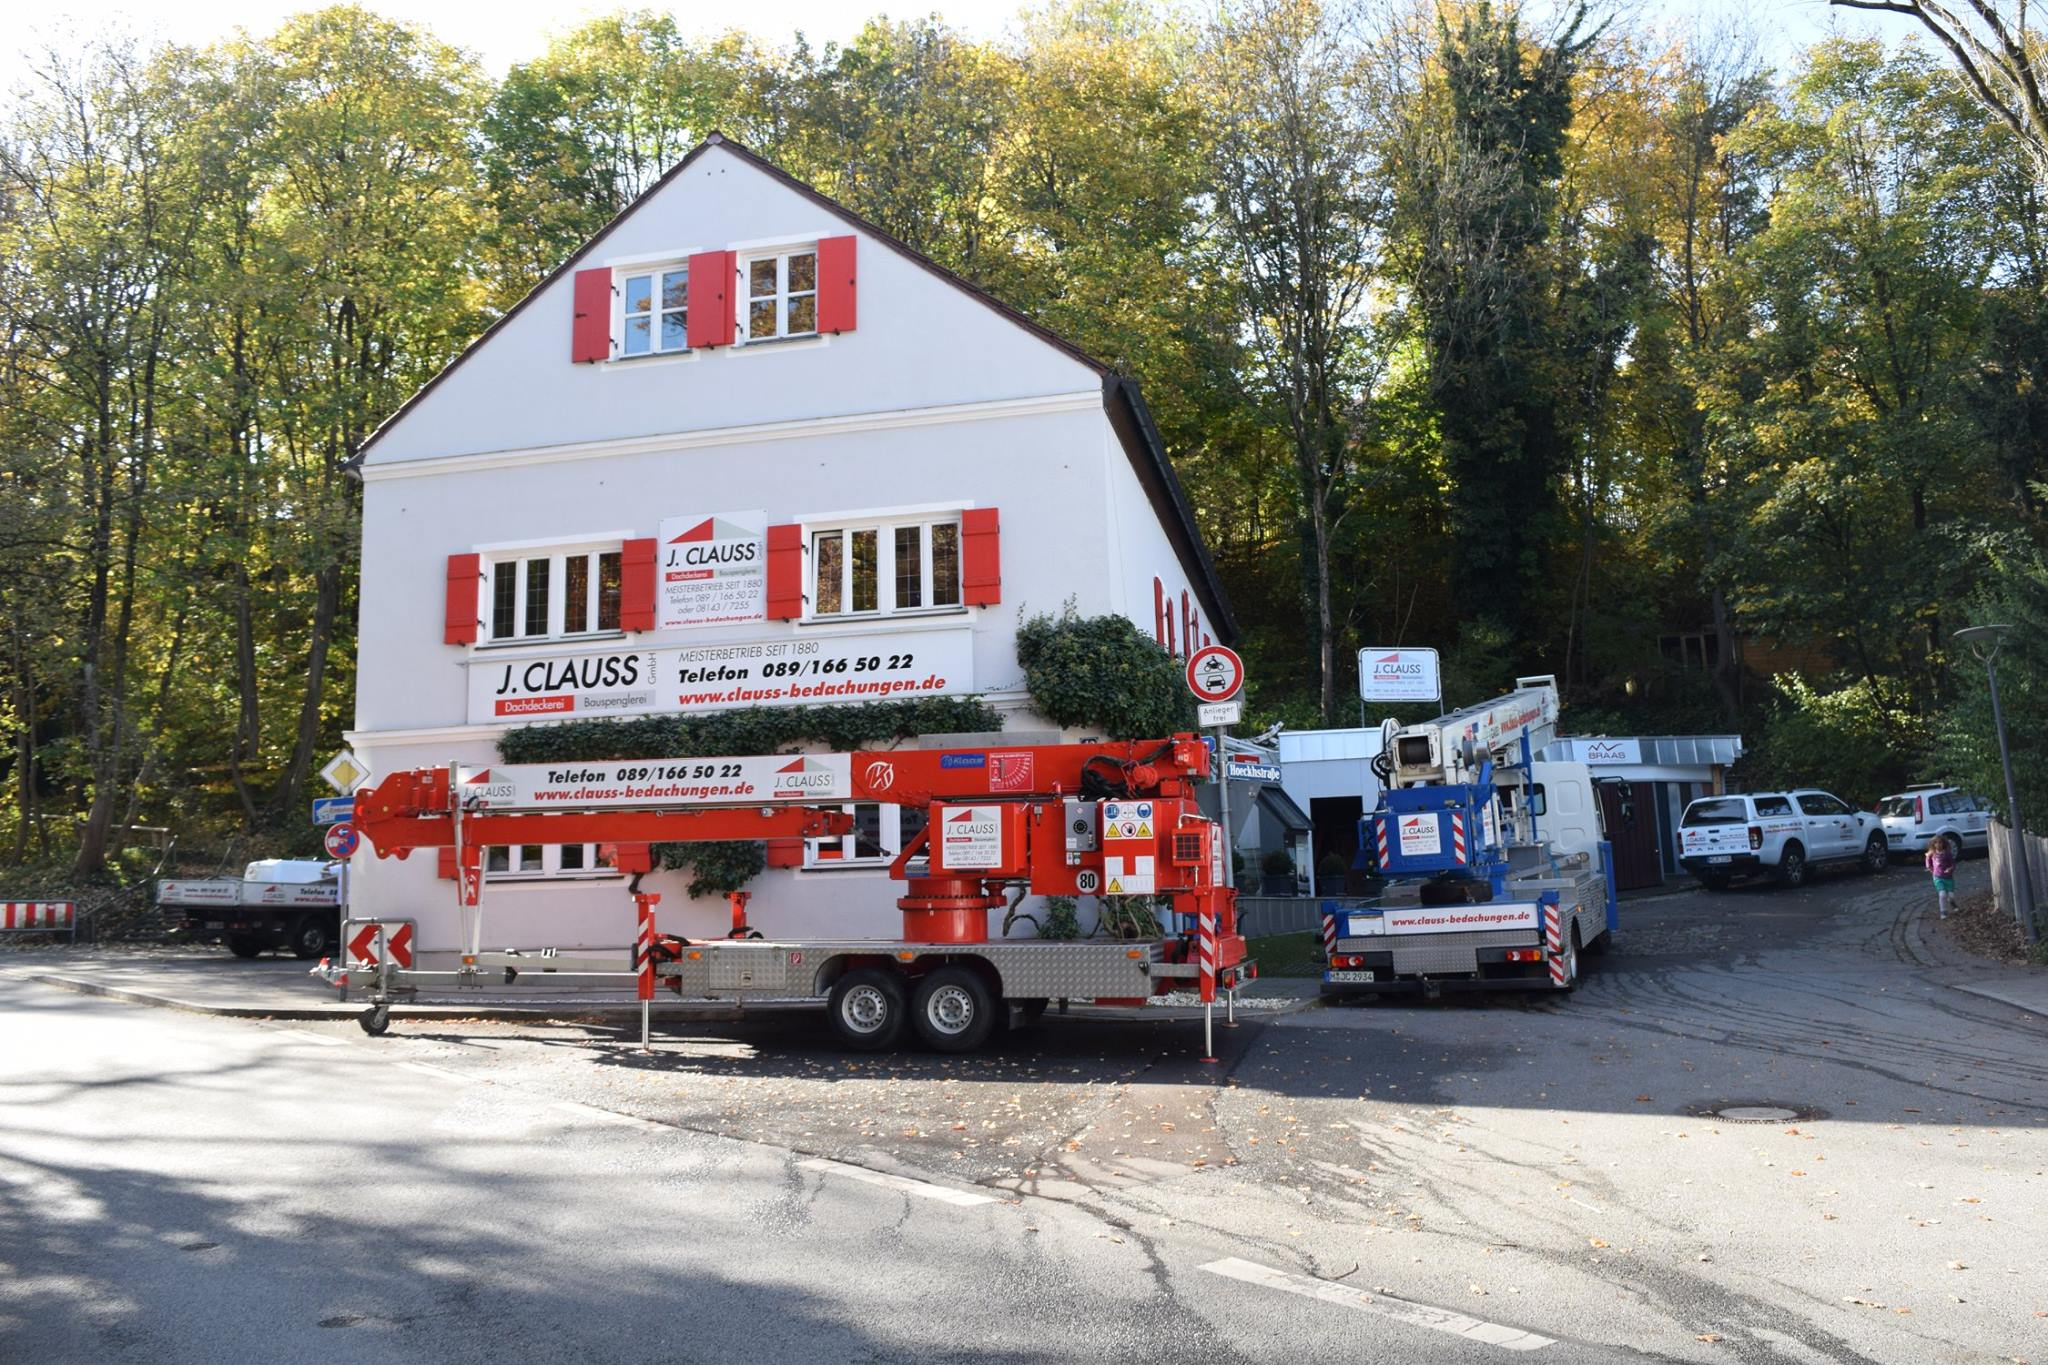 kran mieten in m nchen clauss bedachungen. Black Bedroom Furniture Sets. Home Design Ideas